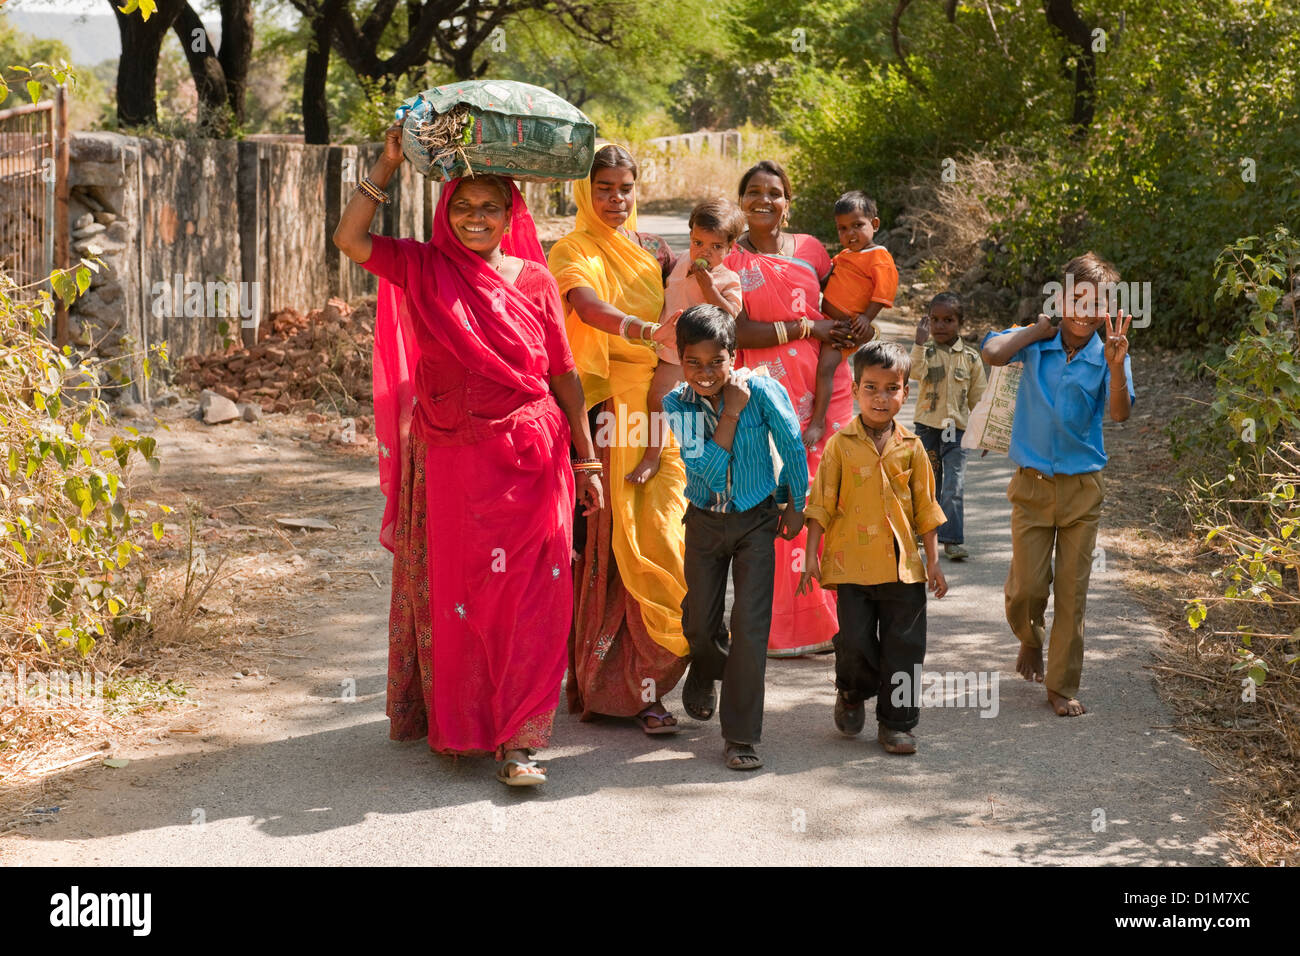 A happy smiling colorful Indian family group of women boys girls and ...